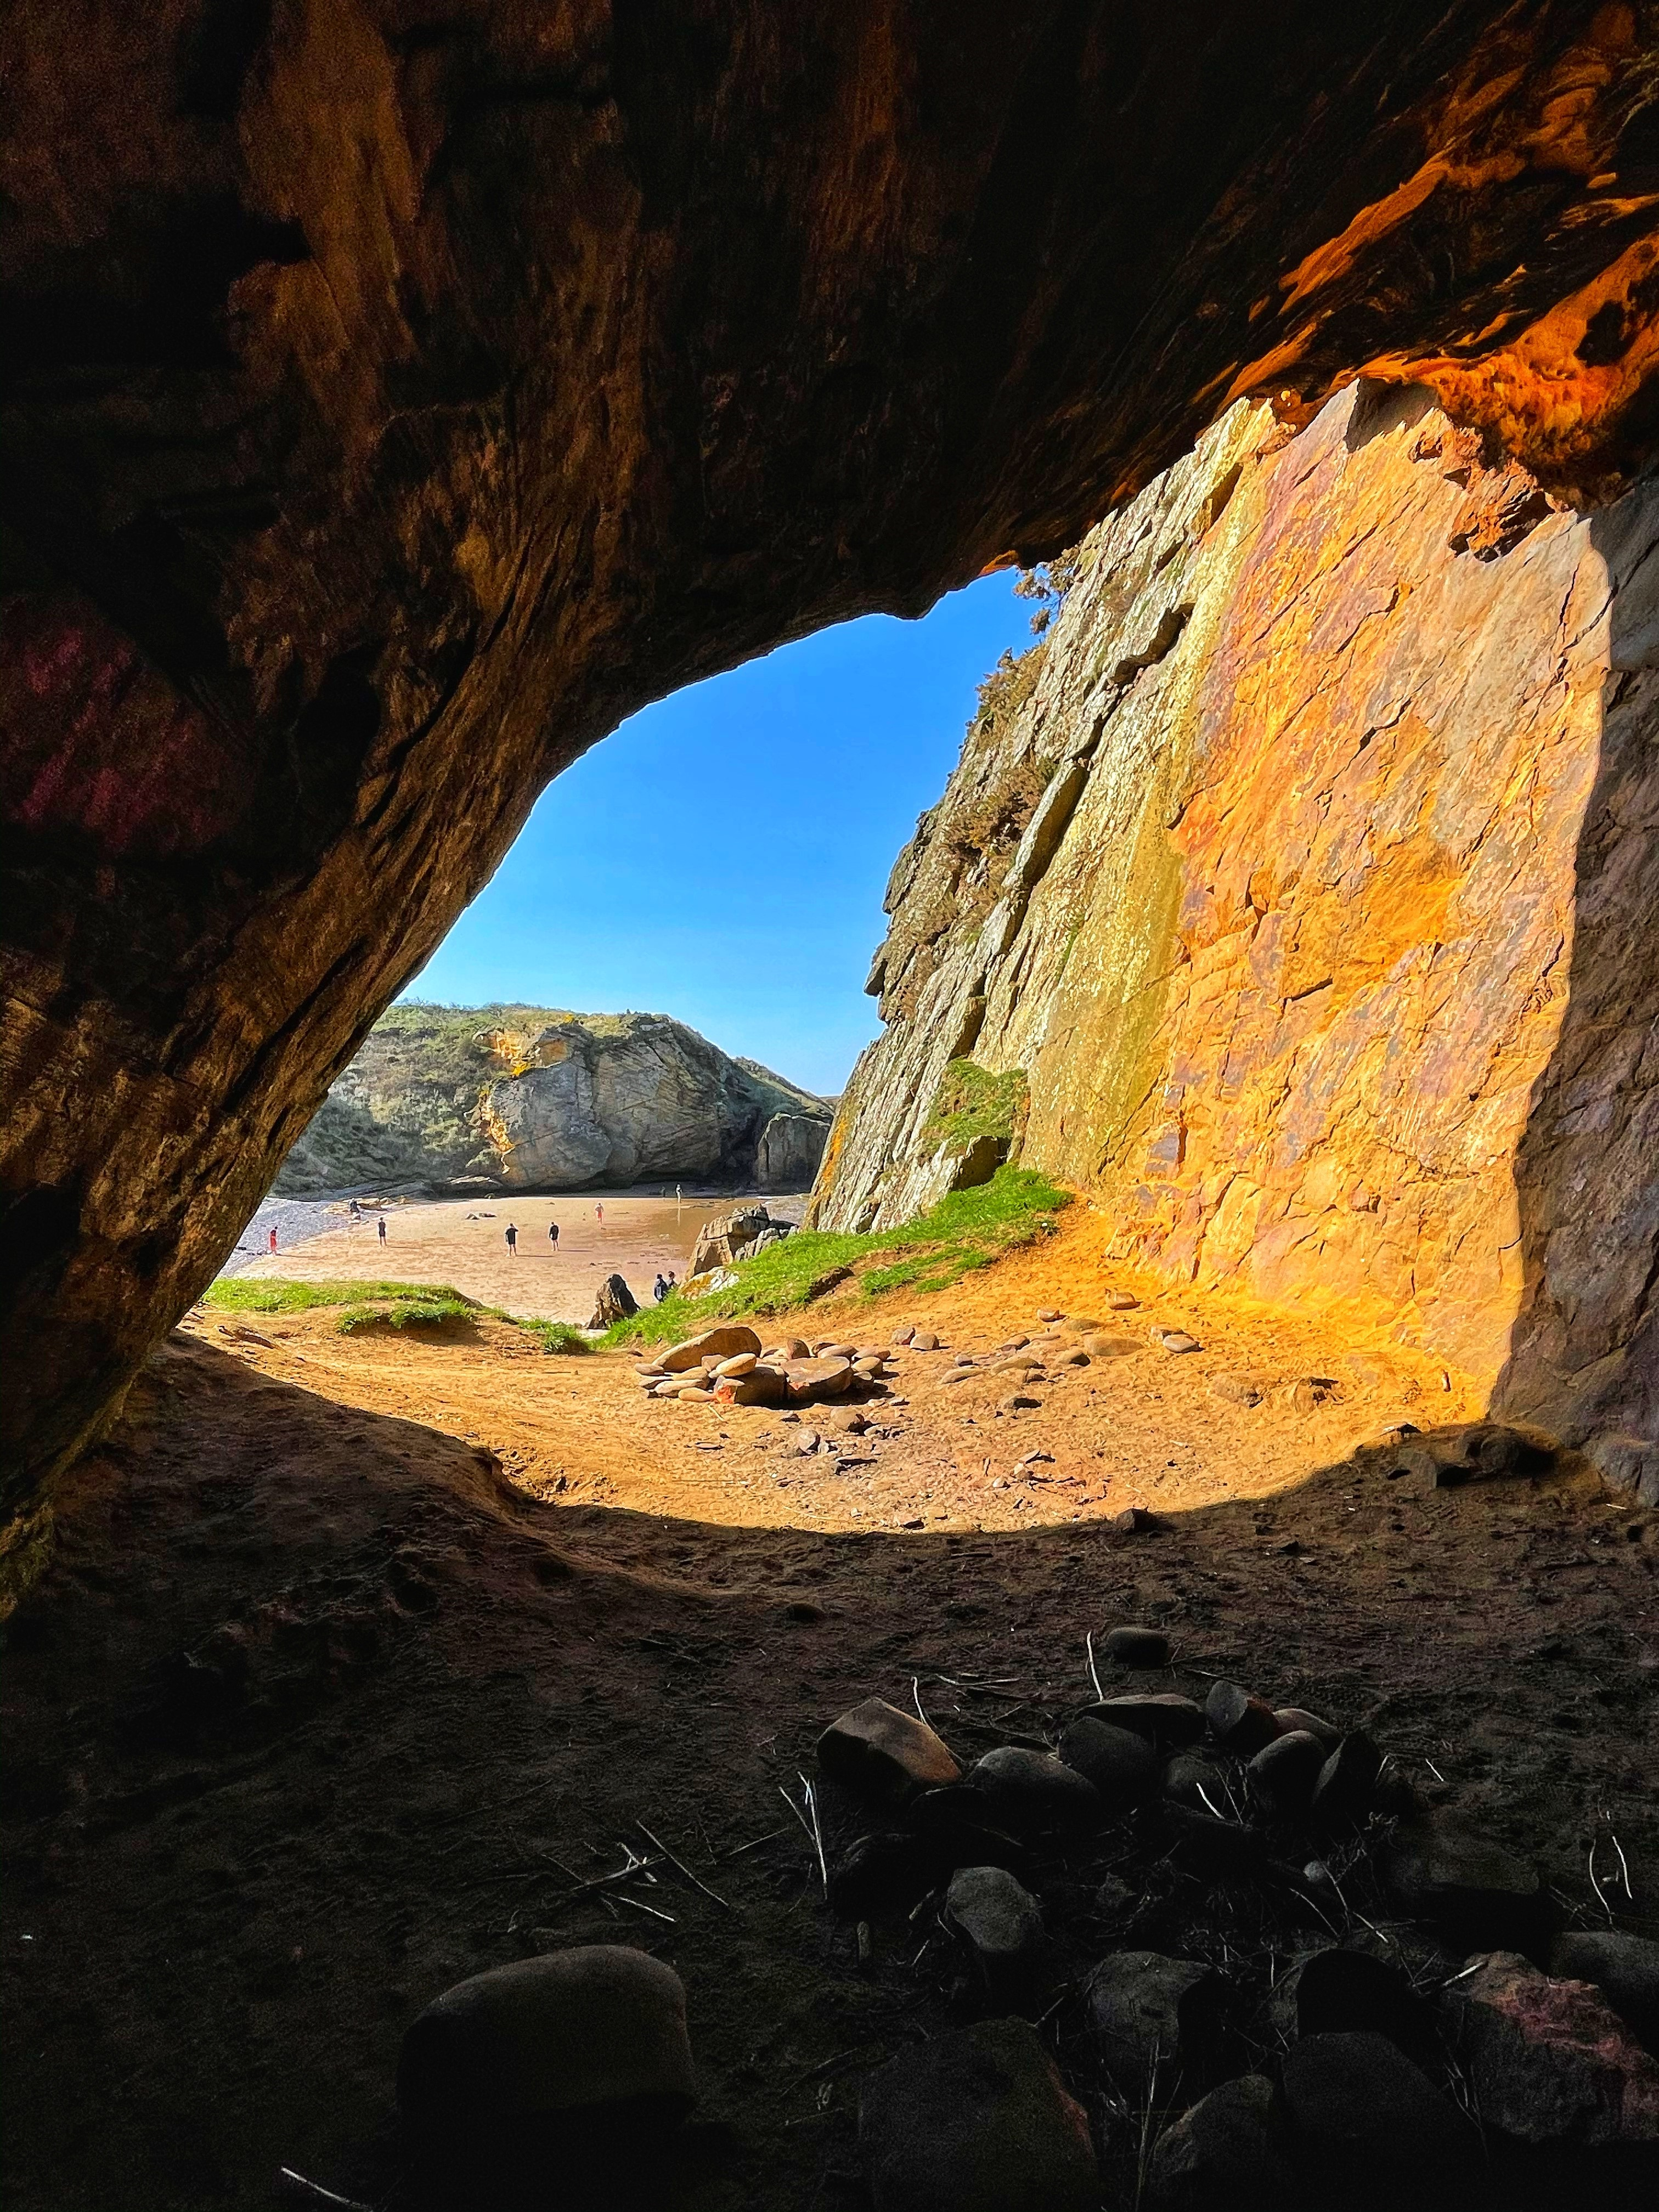 Cave at Clashach Cove